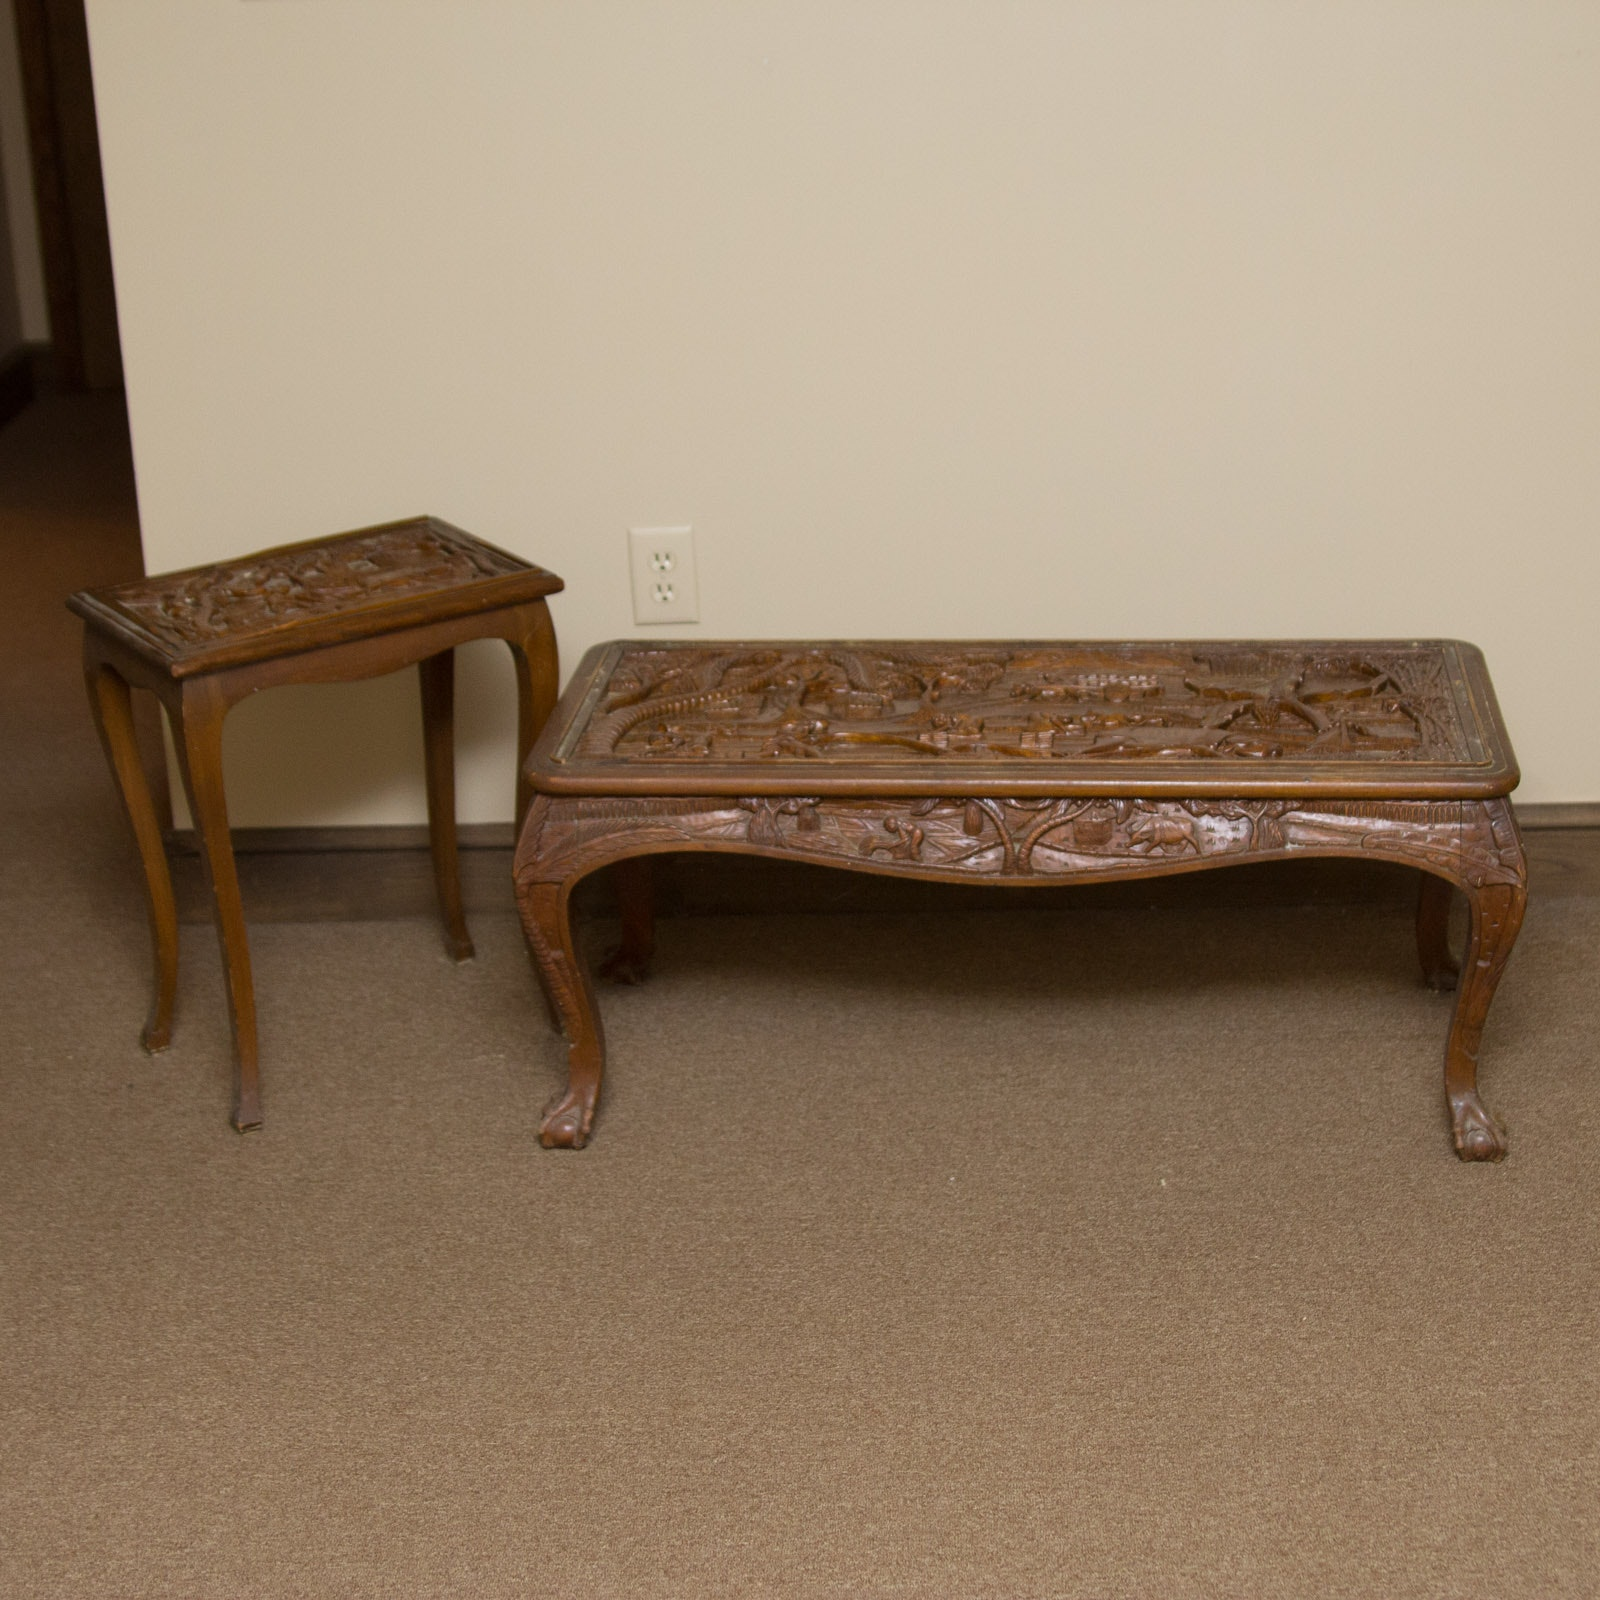 Hand-Carved Farming Themed Coffee Table and End Table from Southeast Asia